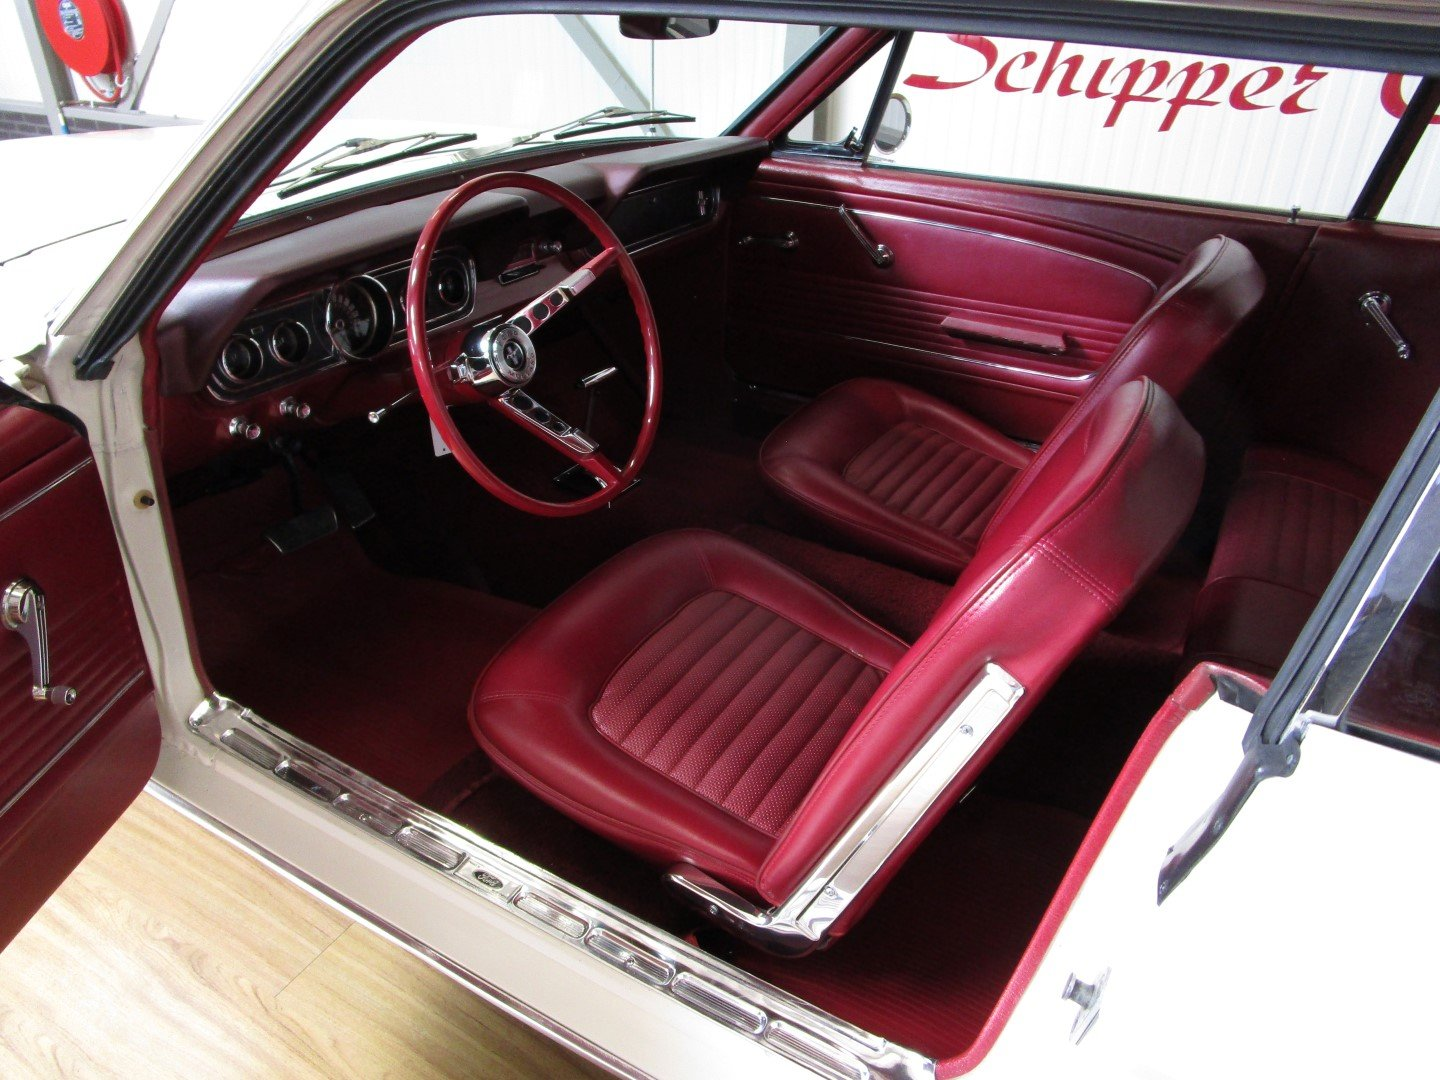 1966 Ford Mustang 289 V8 Coupé Second Owner For Sale (picture 4 of 6)